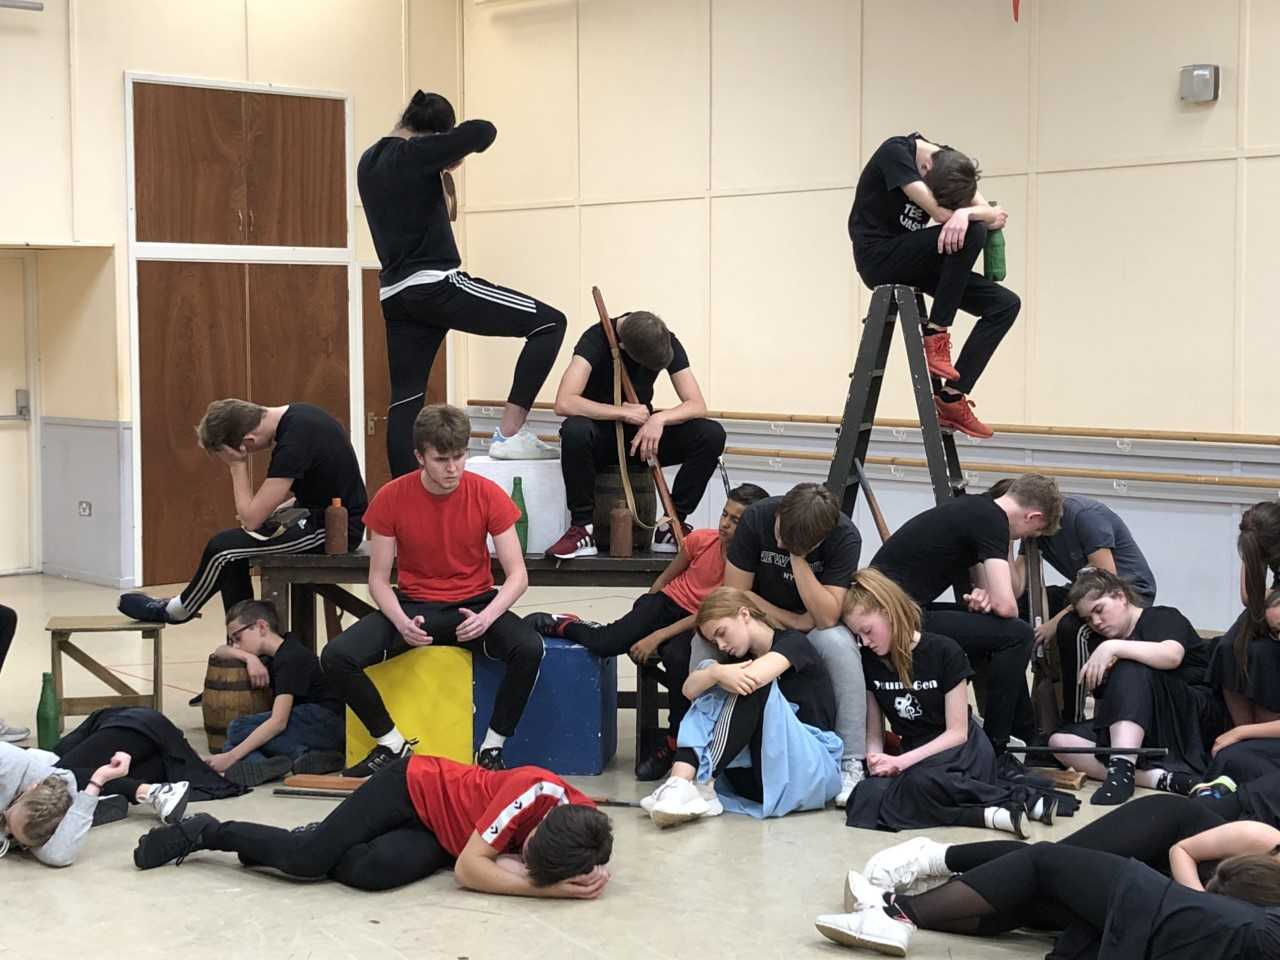 Theatre group for youngsters celebrating 50 years with Les Mis performance